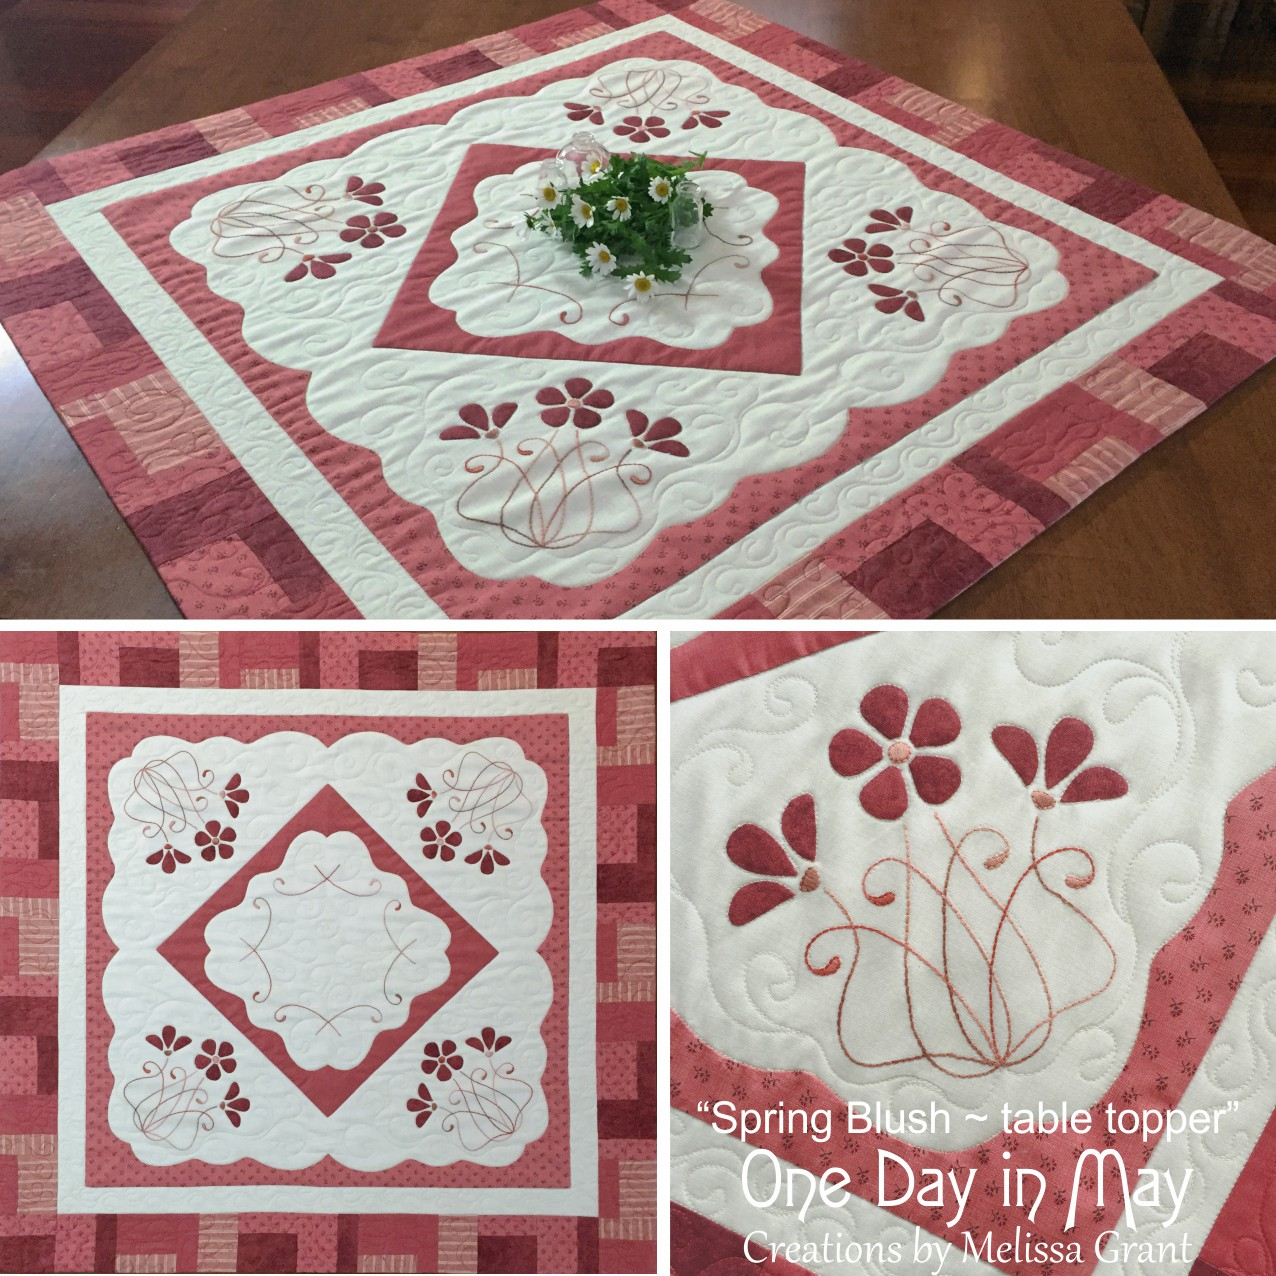 Spring Blush Table Topper - collage